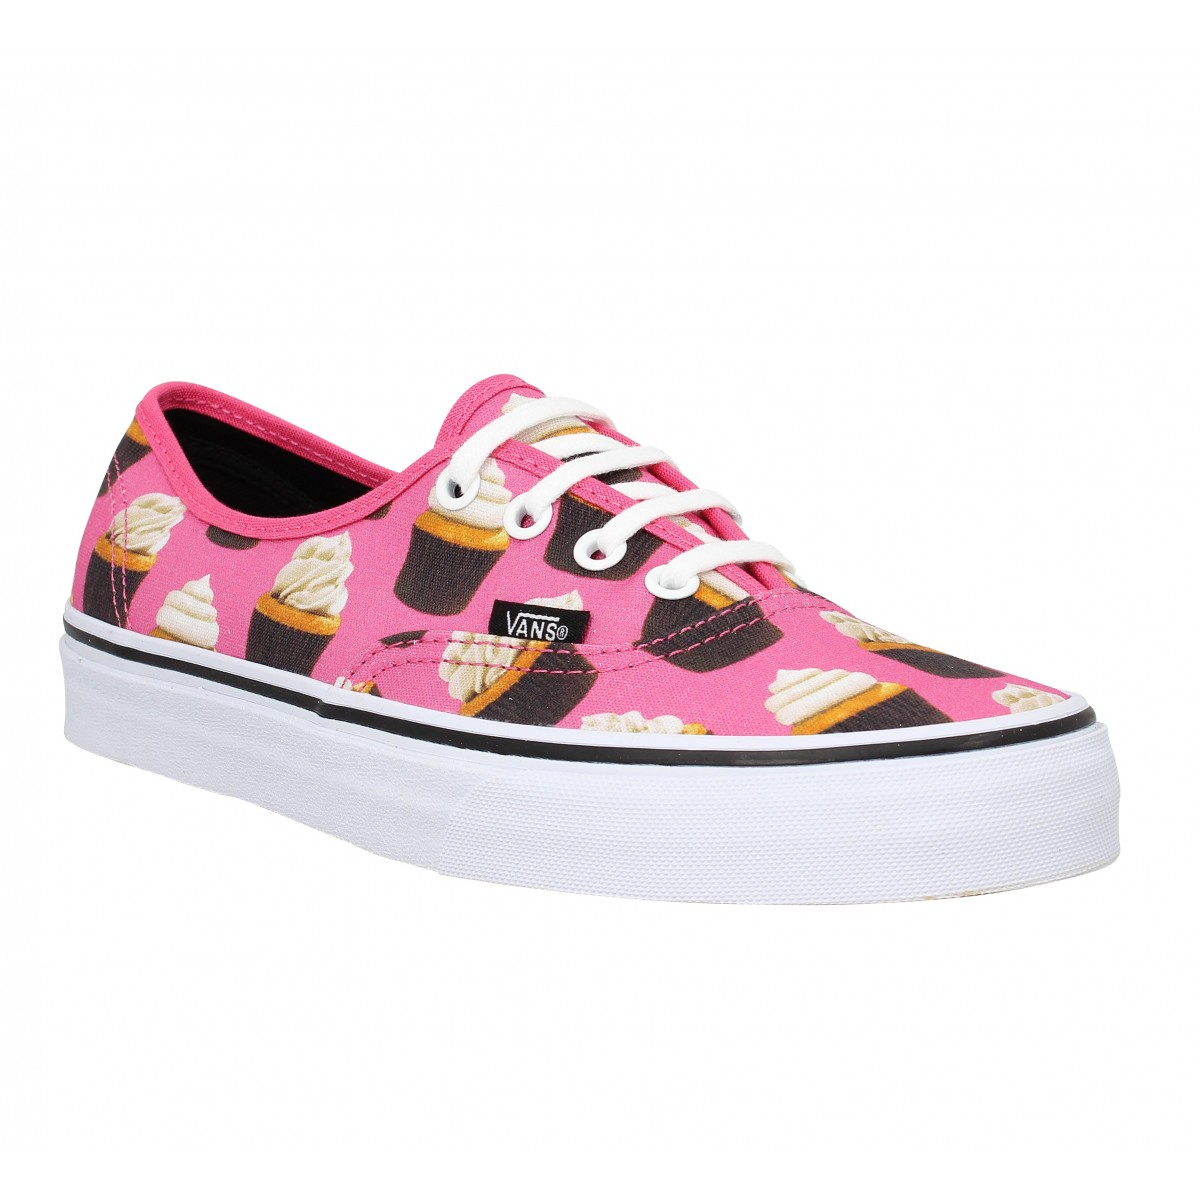 Baskets VANS Authentic cup cakes Femme Rose